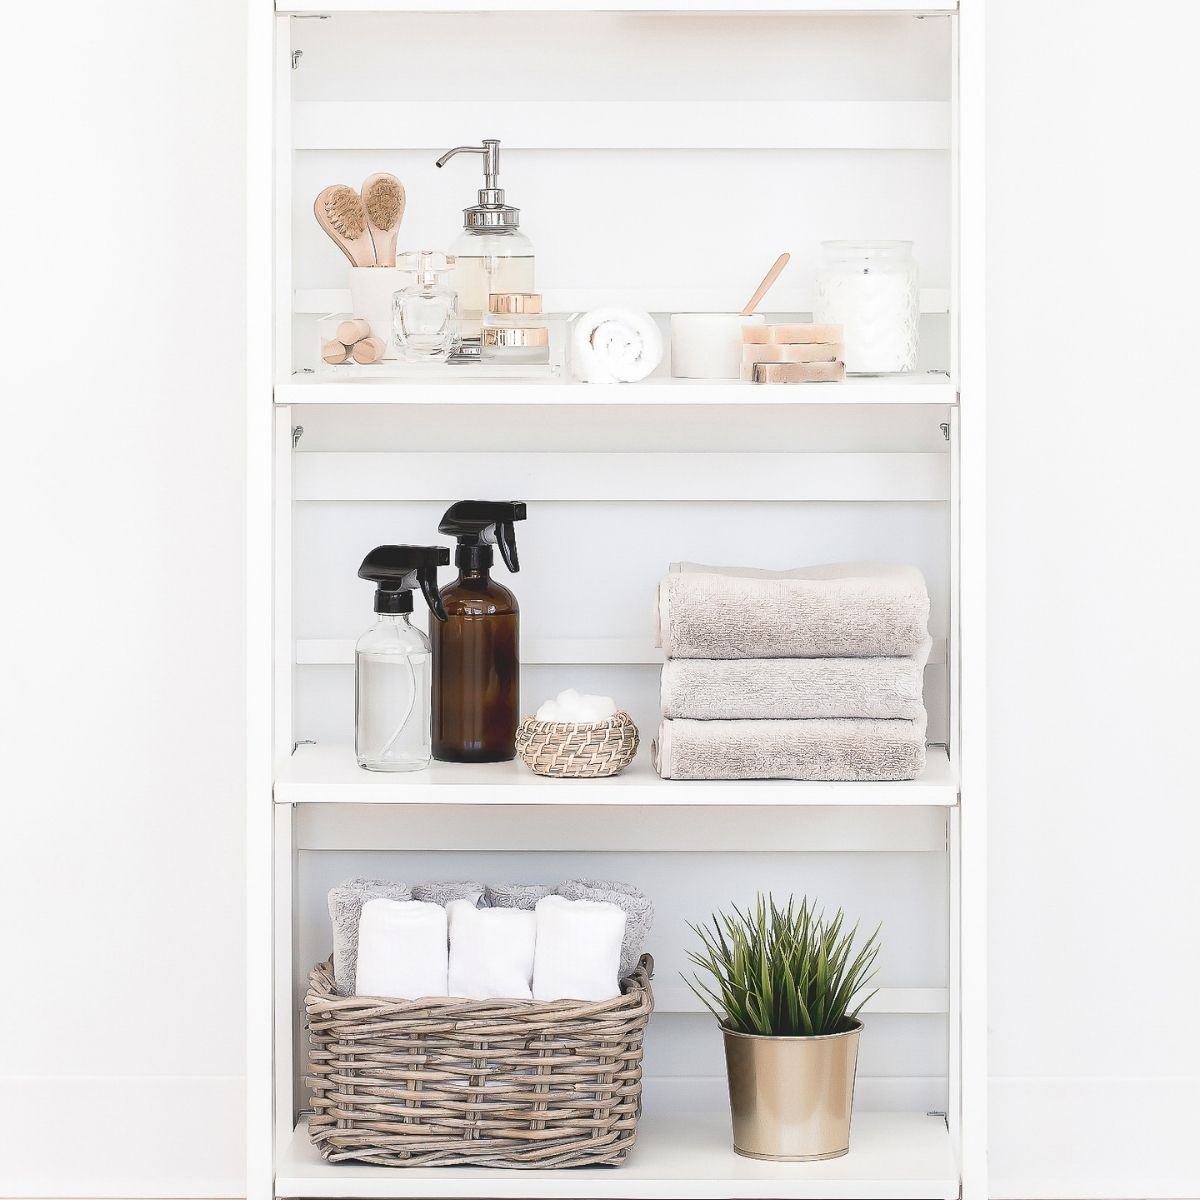 cleaning supplies on a shelf